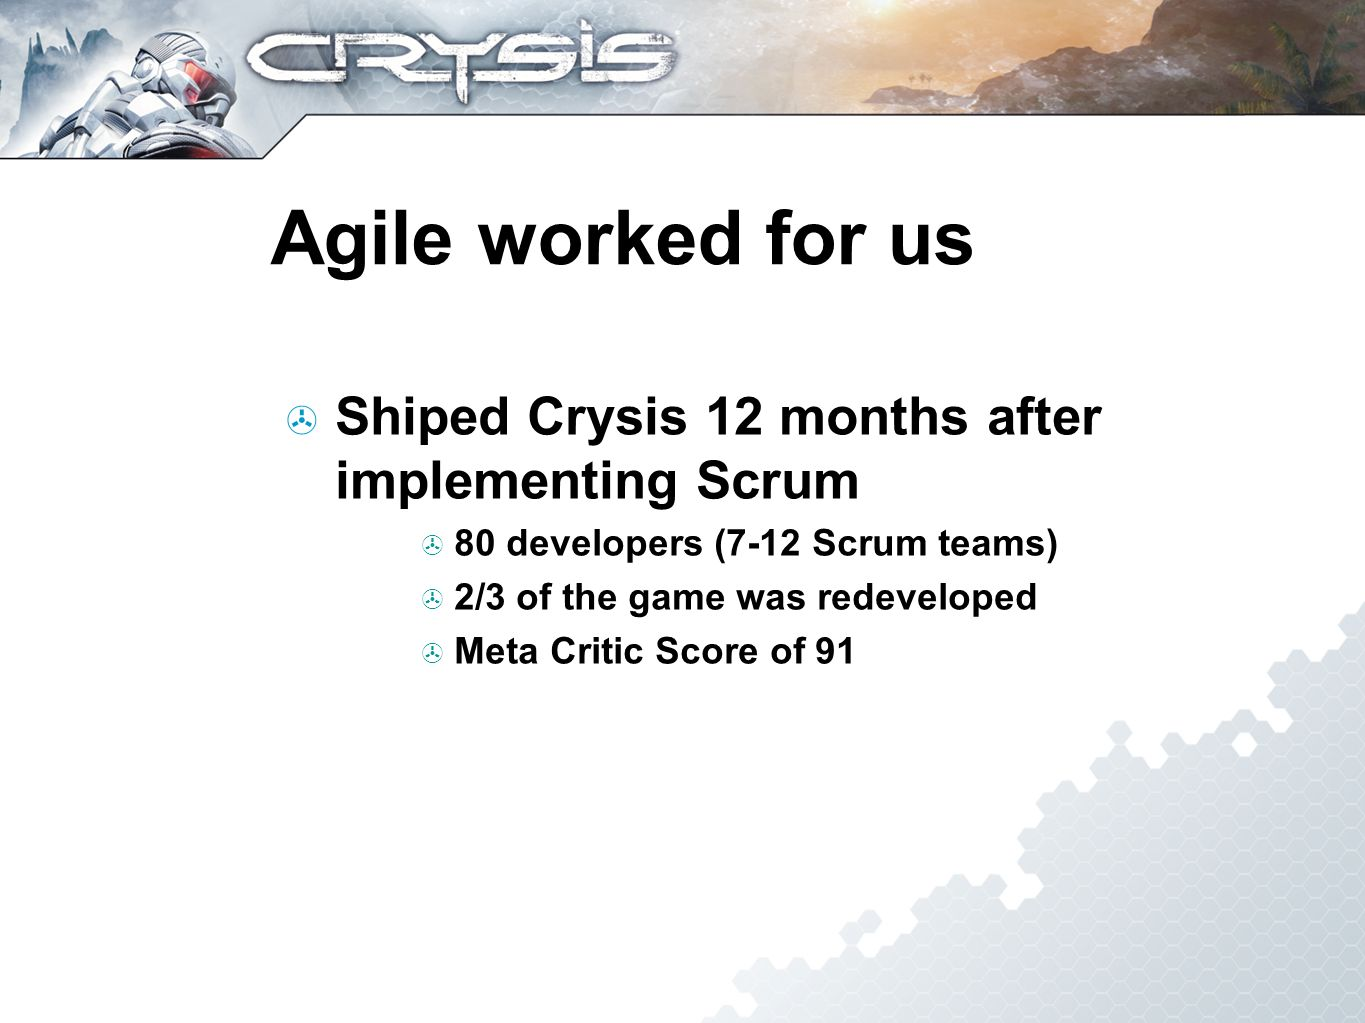 Agile worked for us Shiped Crysis 12 months after implementing Scrum 80 developers (7-12 Scrum teams) 2/3 of the game was redeveloped Meta Critic Score of 91